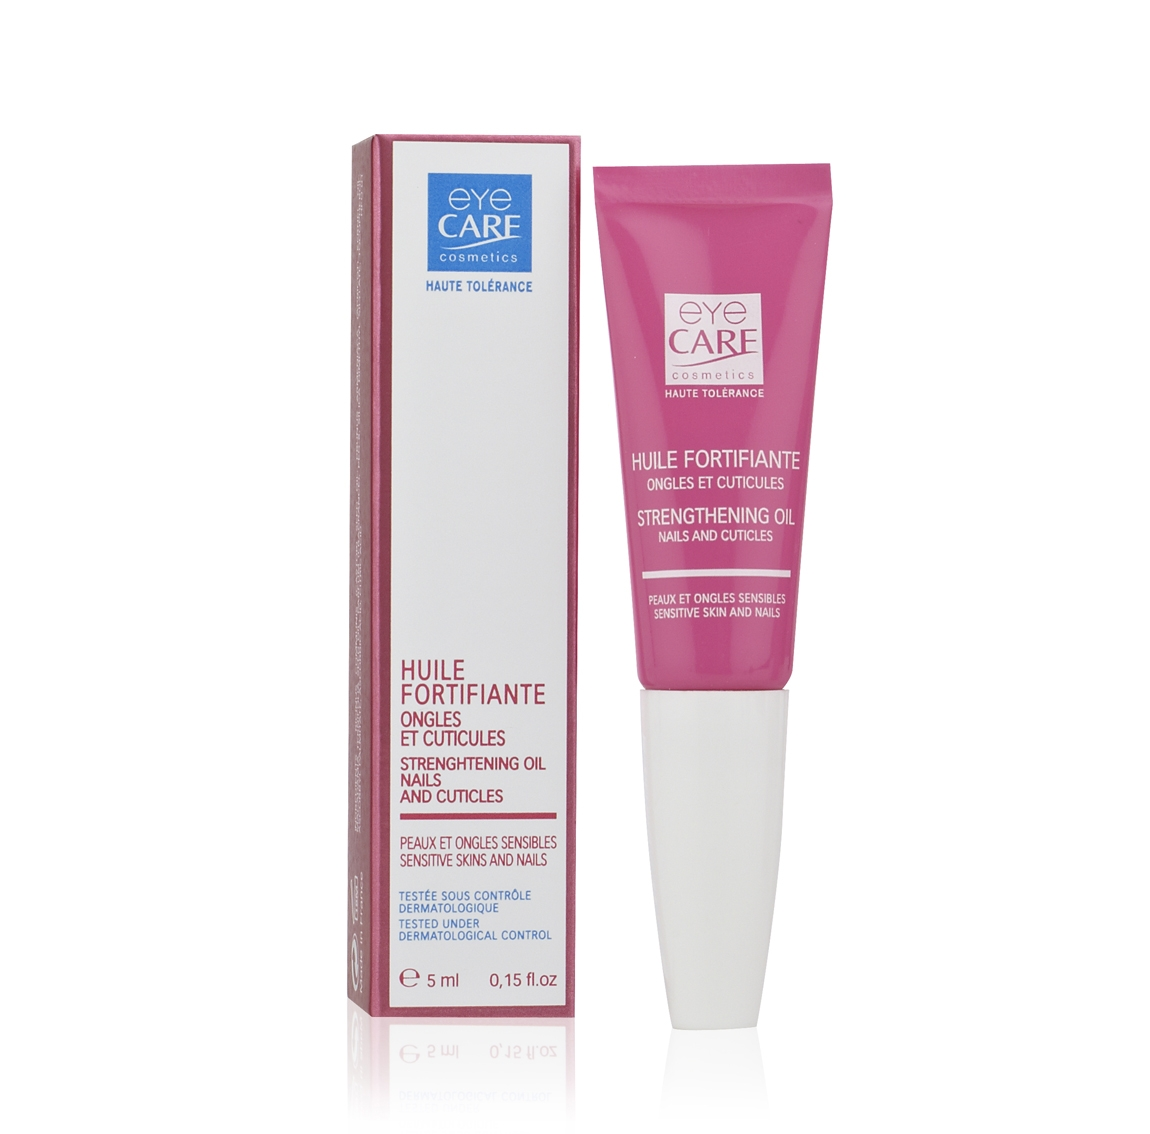 huile fortifiante, ongles abimes cancer, eye care cosmetics